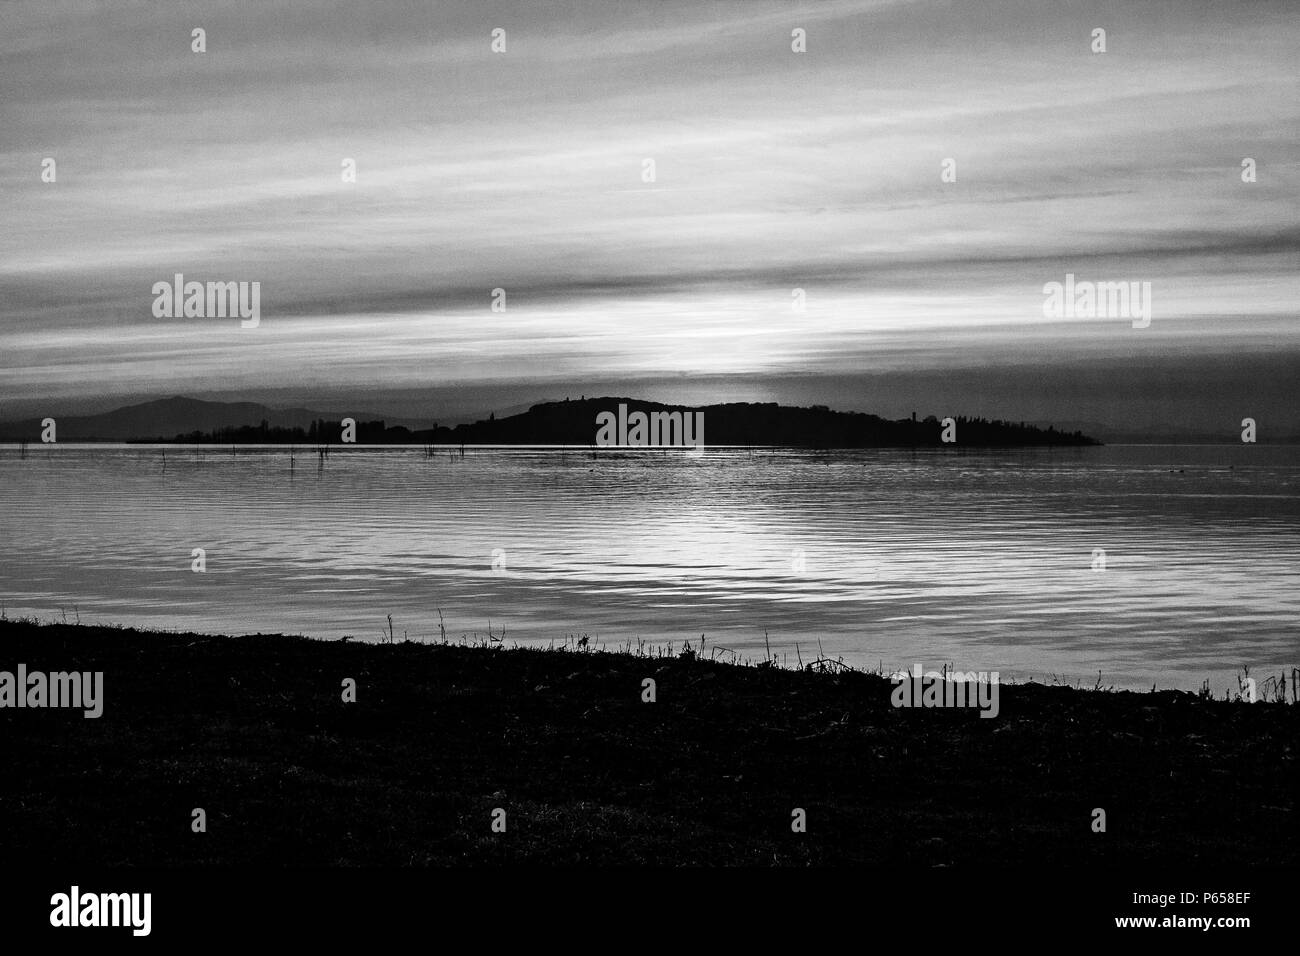 A shoot of a sunset over a lake, with many diagonal lines created by the clouds and the coastline - Stock Image